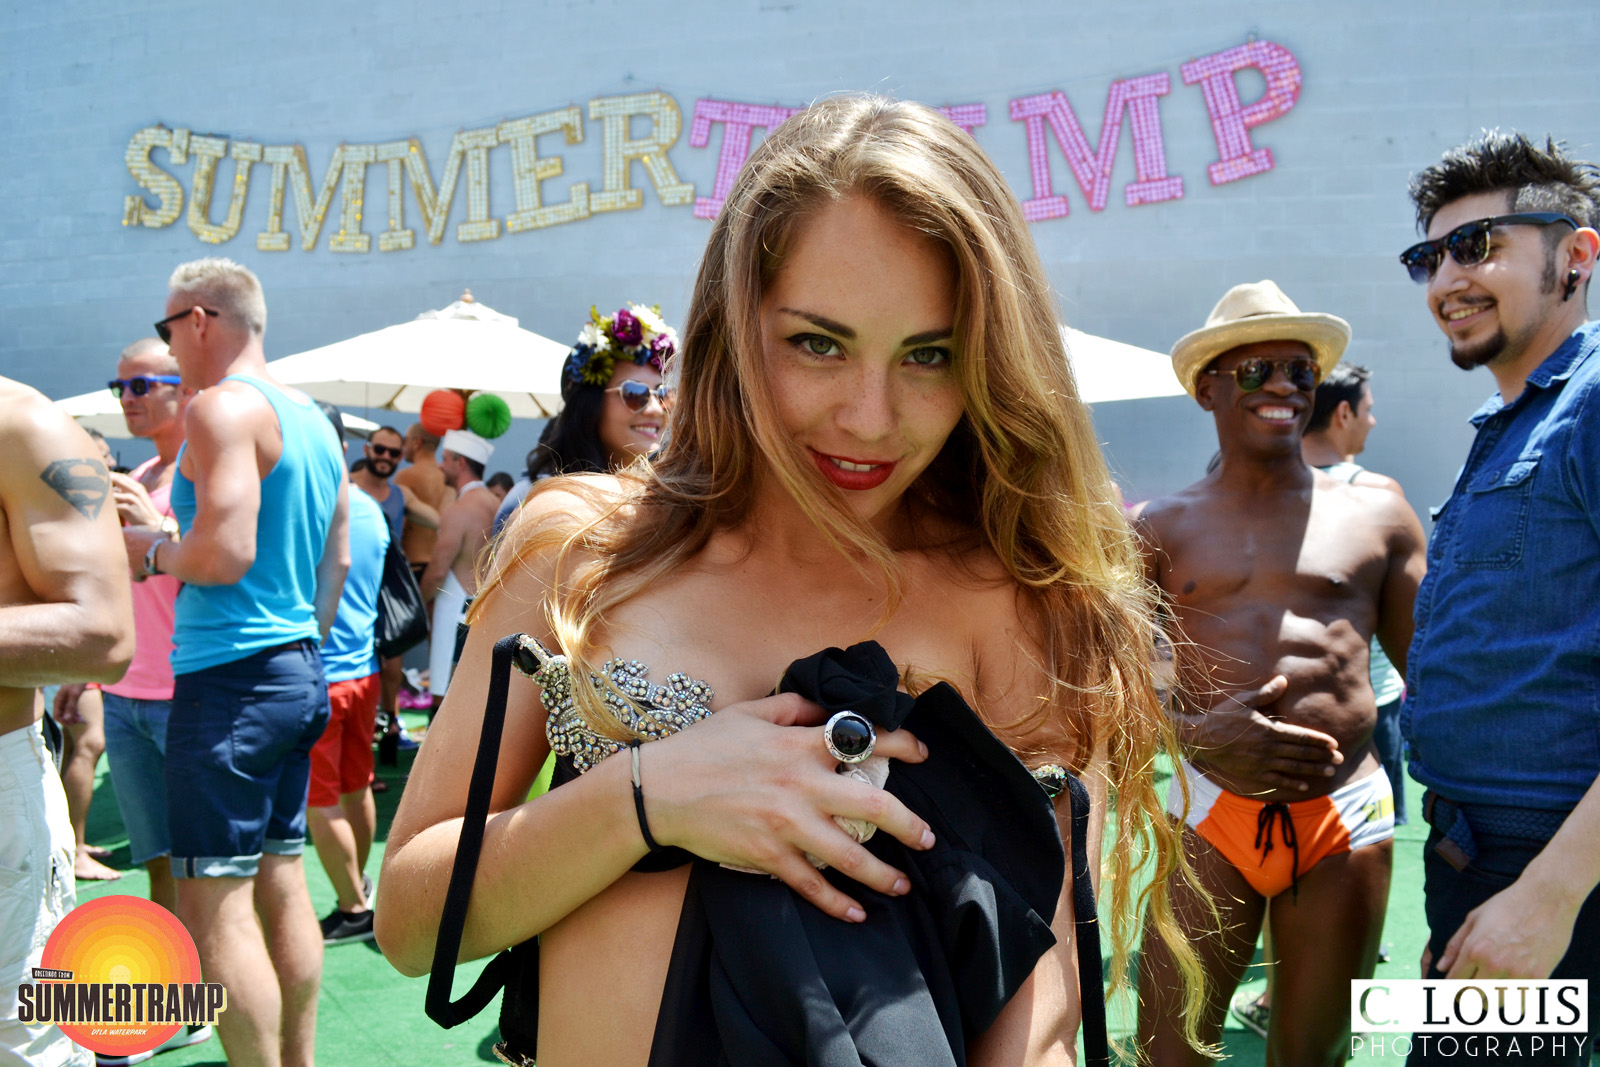 SUMMERTRAMP LA